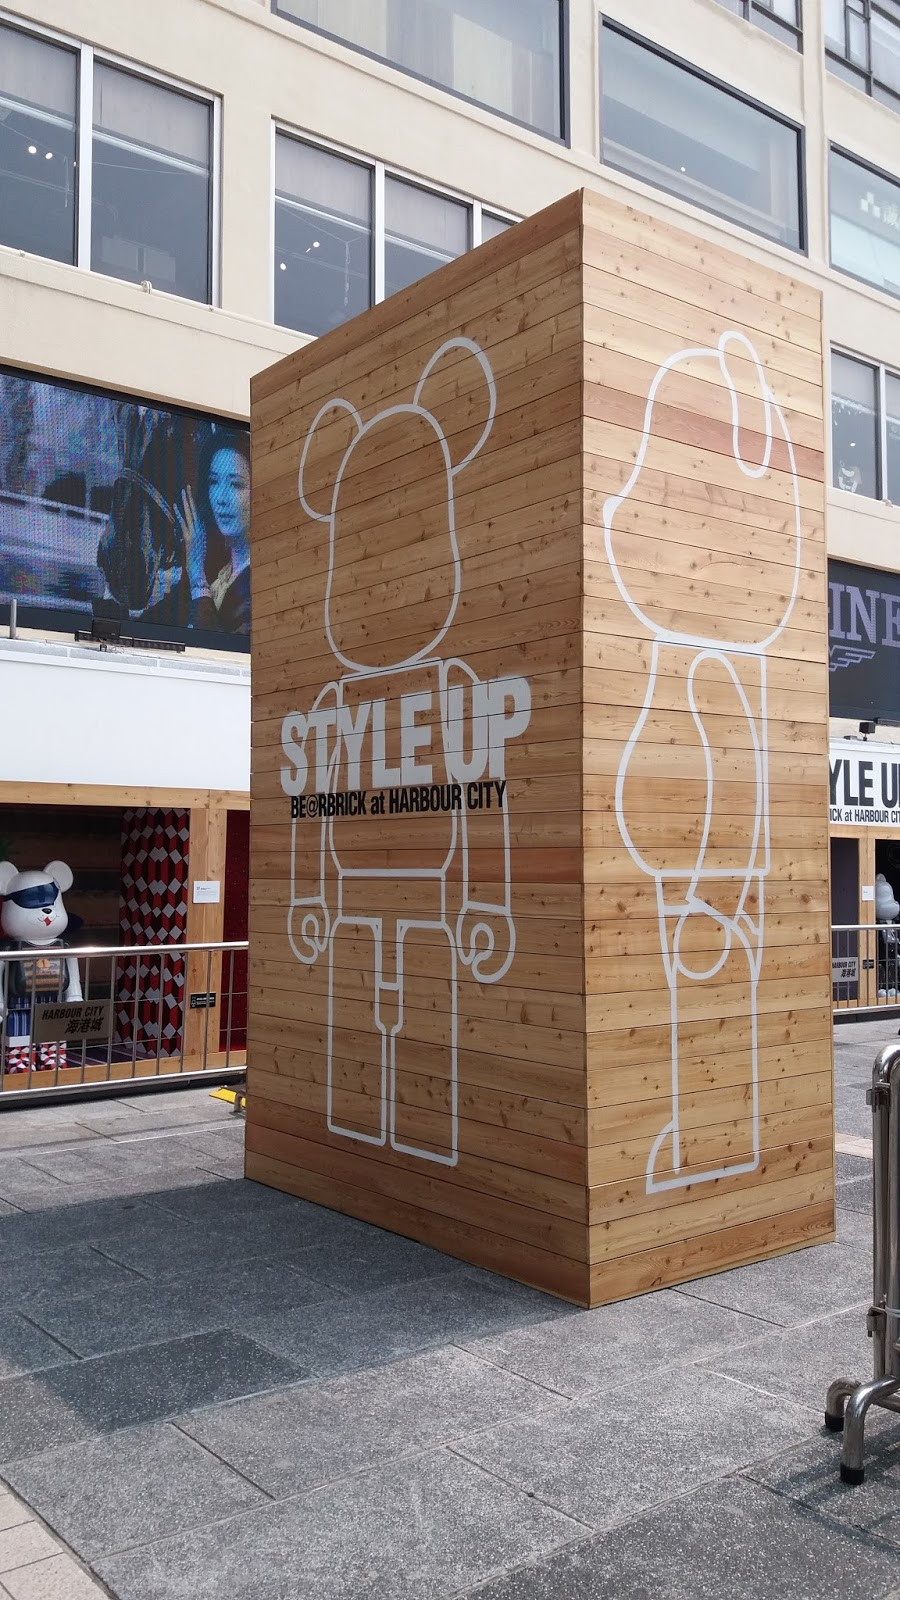 Event Post: Style Up BE@RBRICK Exhibit @ Harbour City, Hong Kong